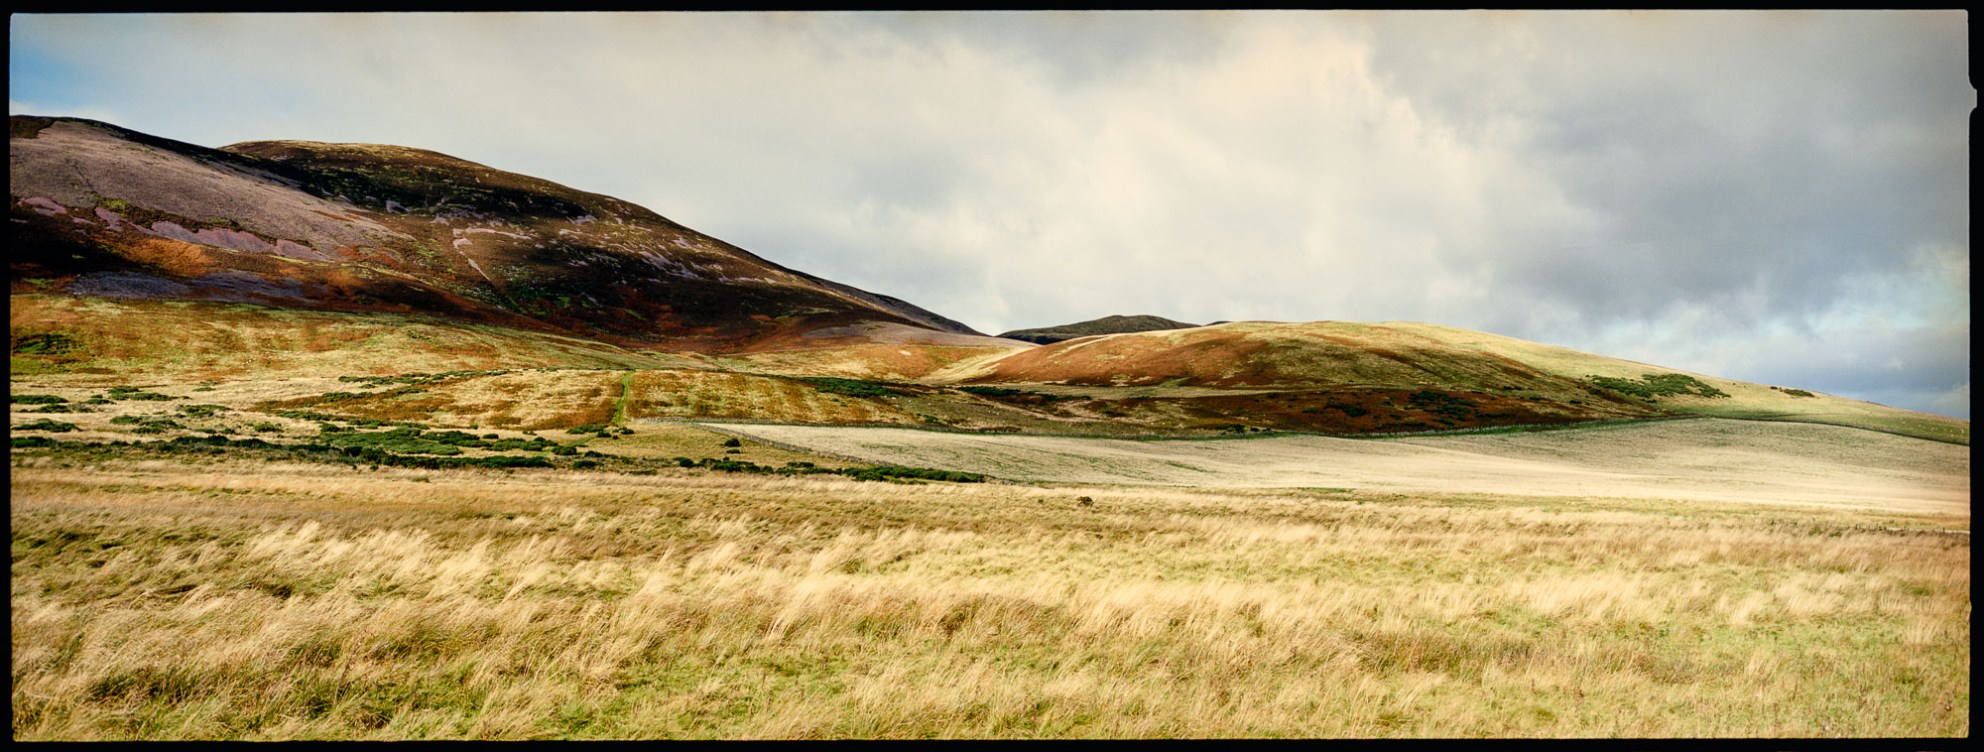 Rolling hills in scotland, shot on ektar 100 film with a hasselblad xpan